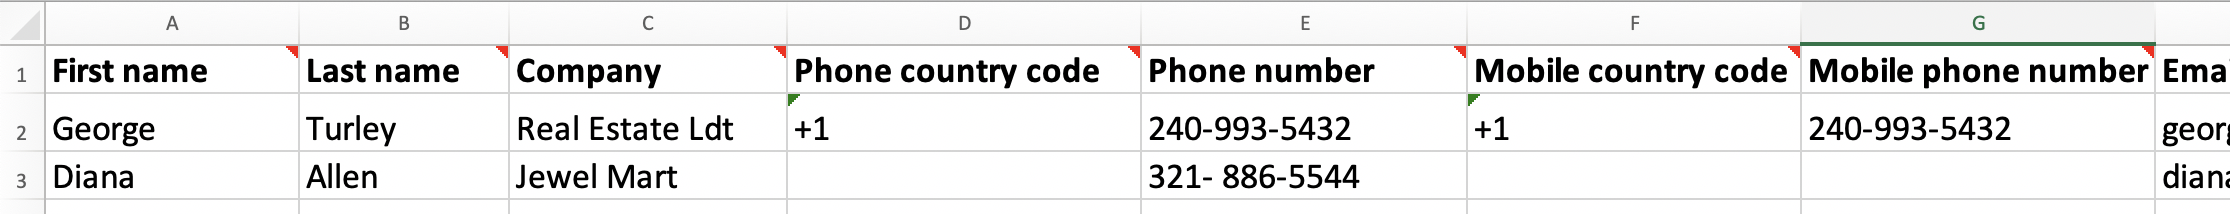 Import_existing_customer_contacts.png